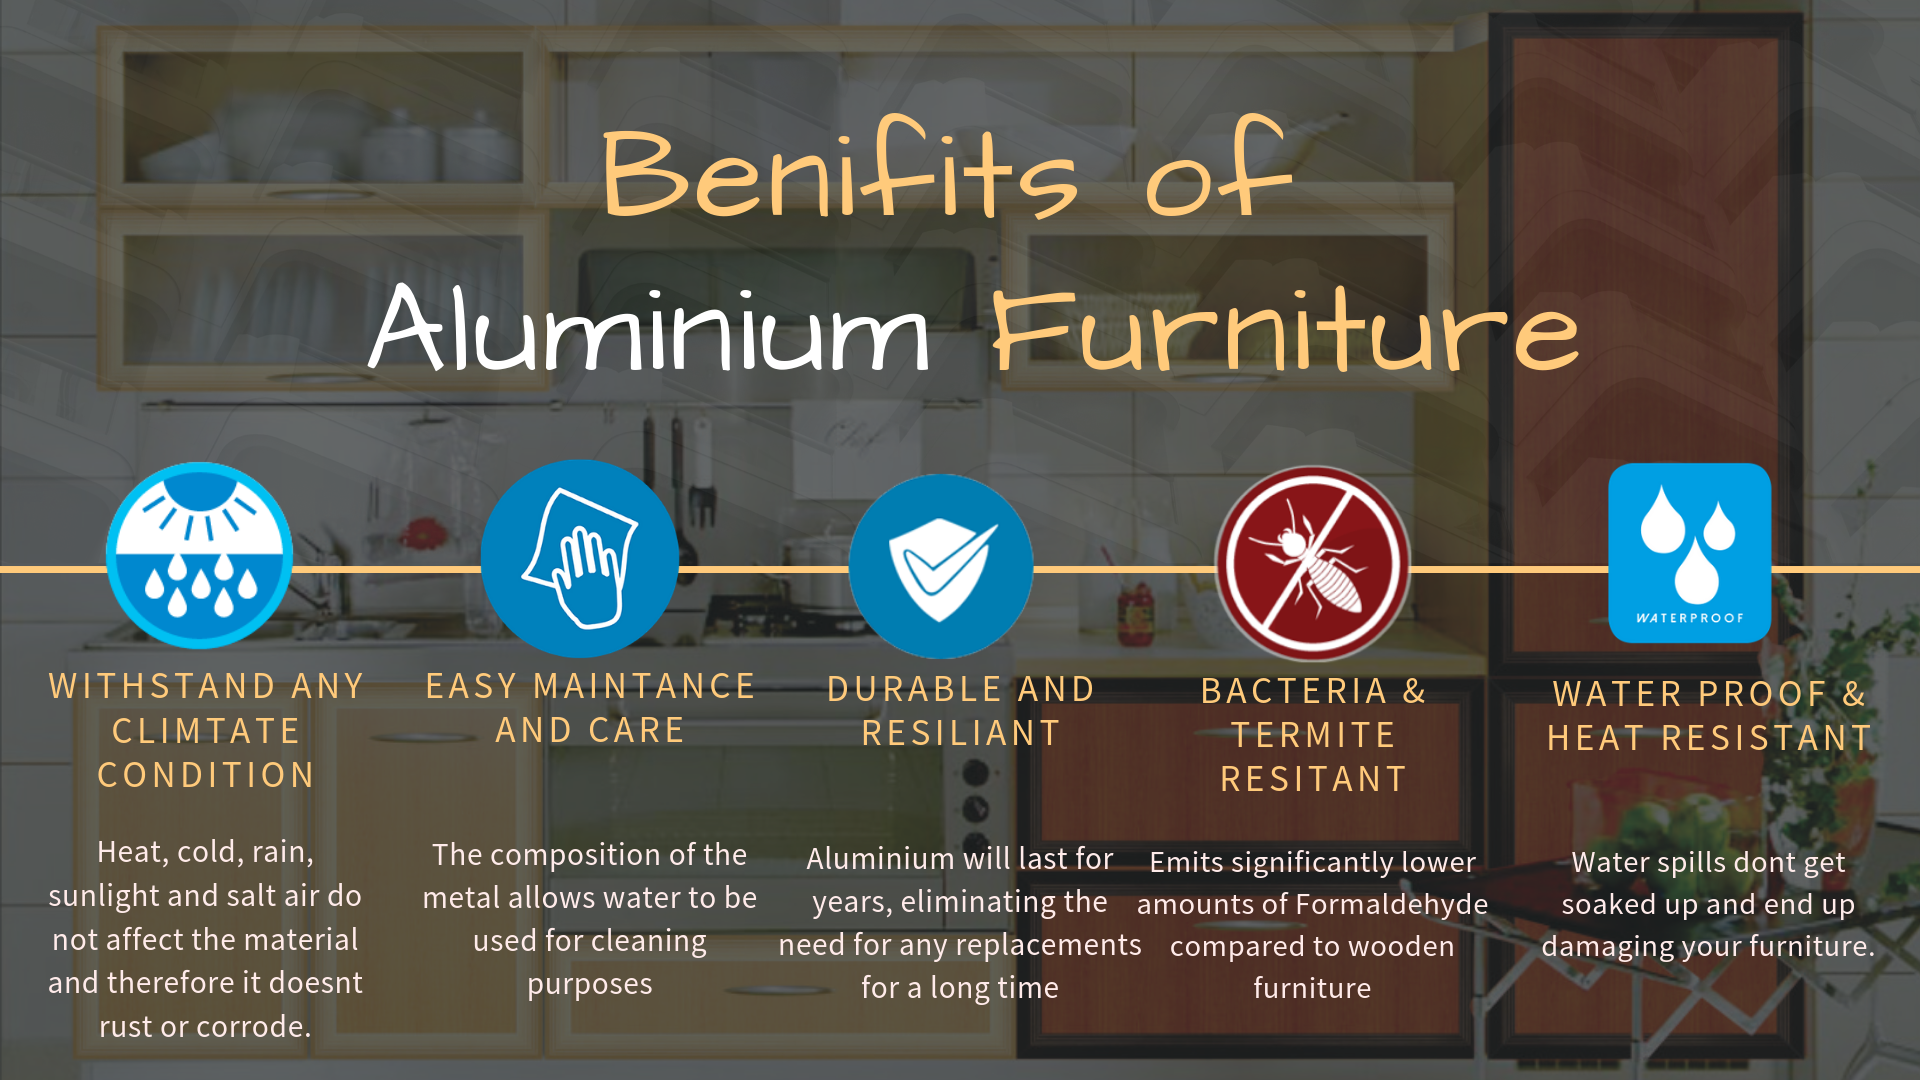 Benifits of Aluminium Furniture